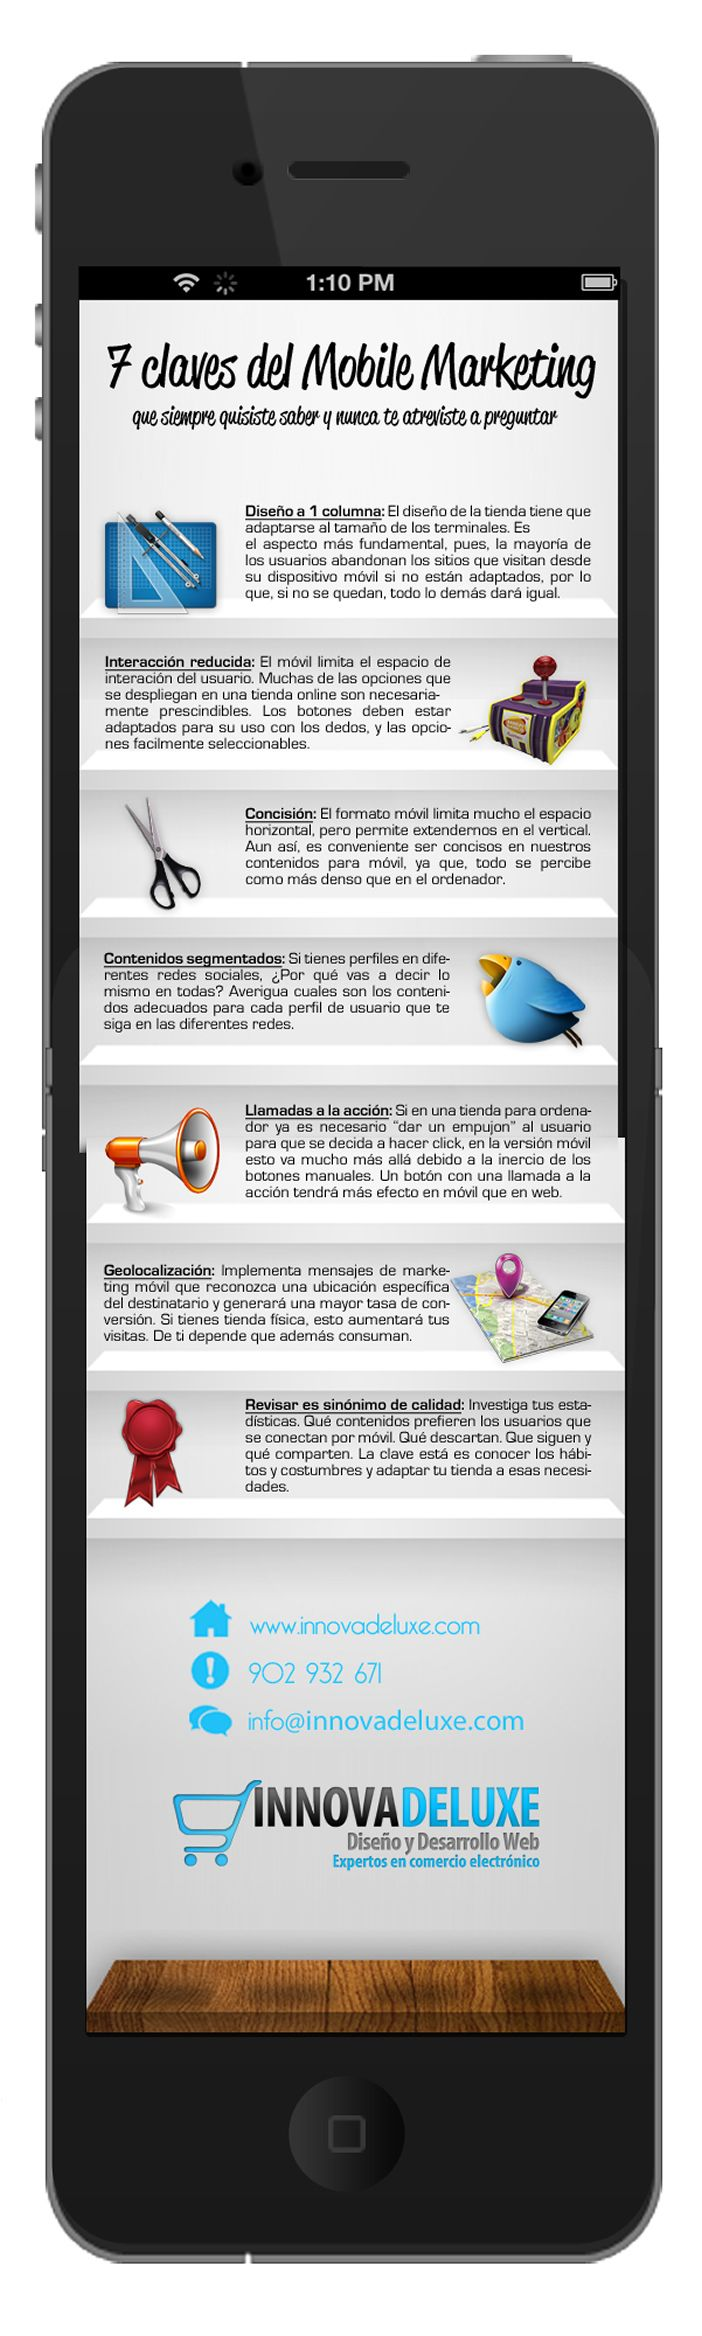 7 claves del marketing móvil #infografia #infographic #marketing